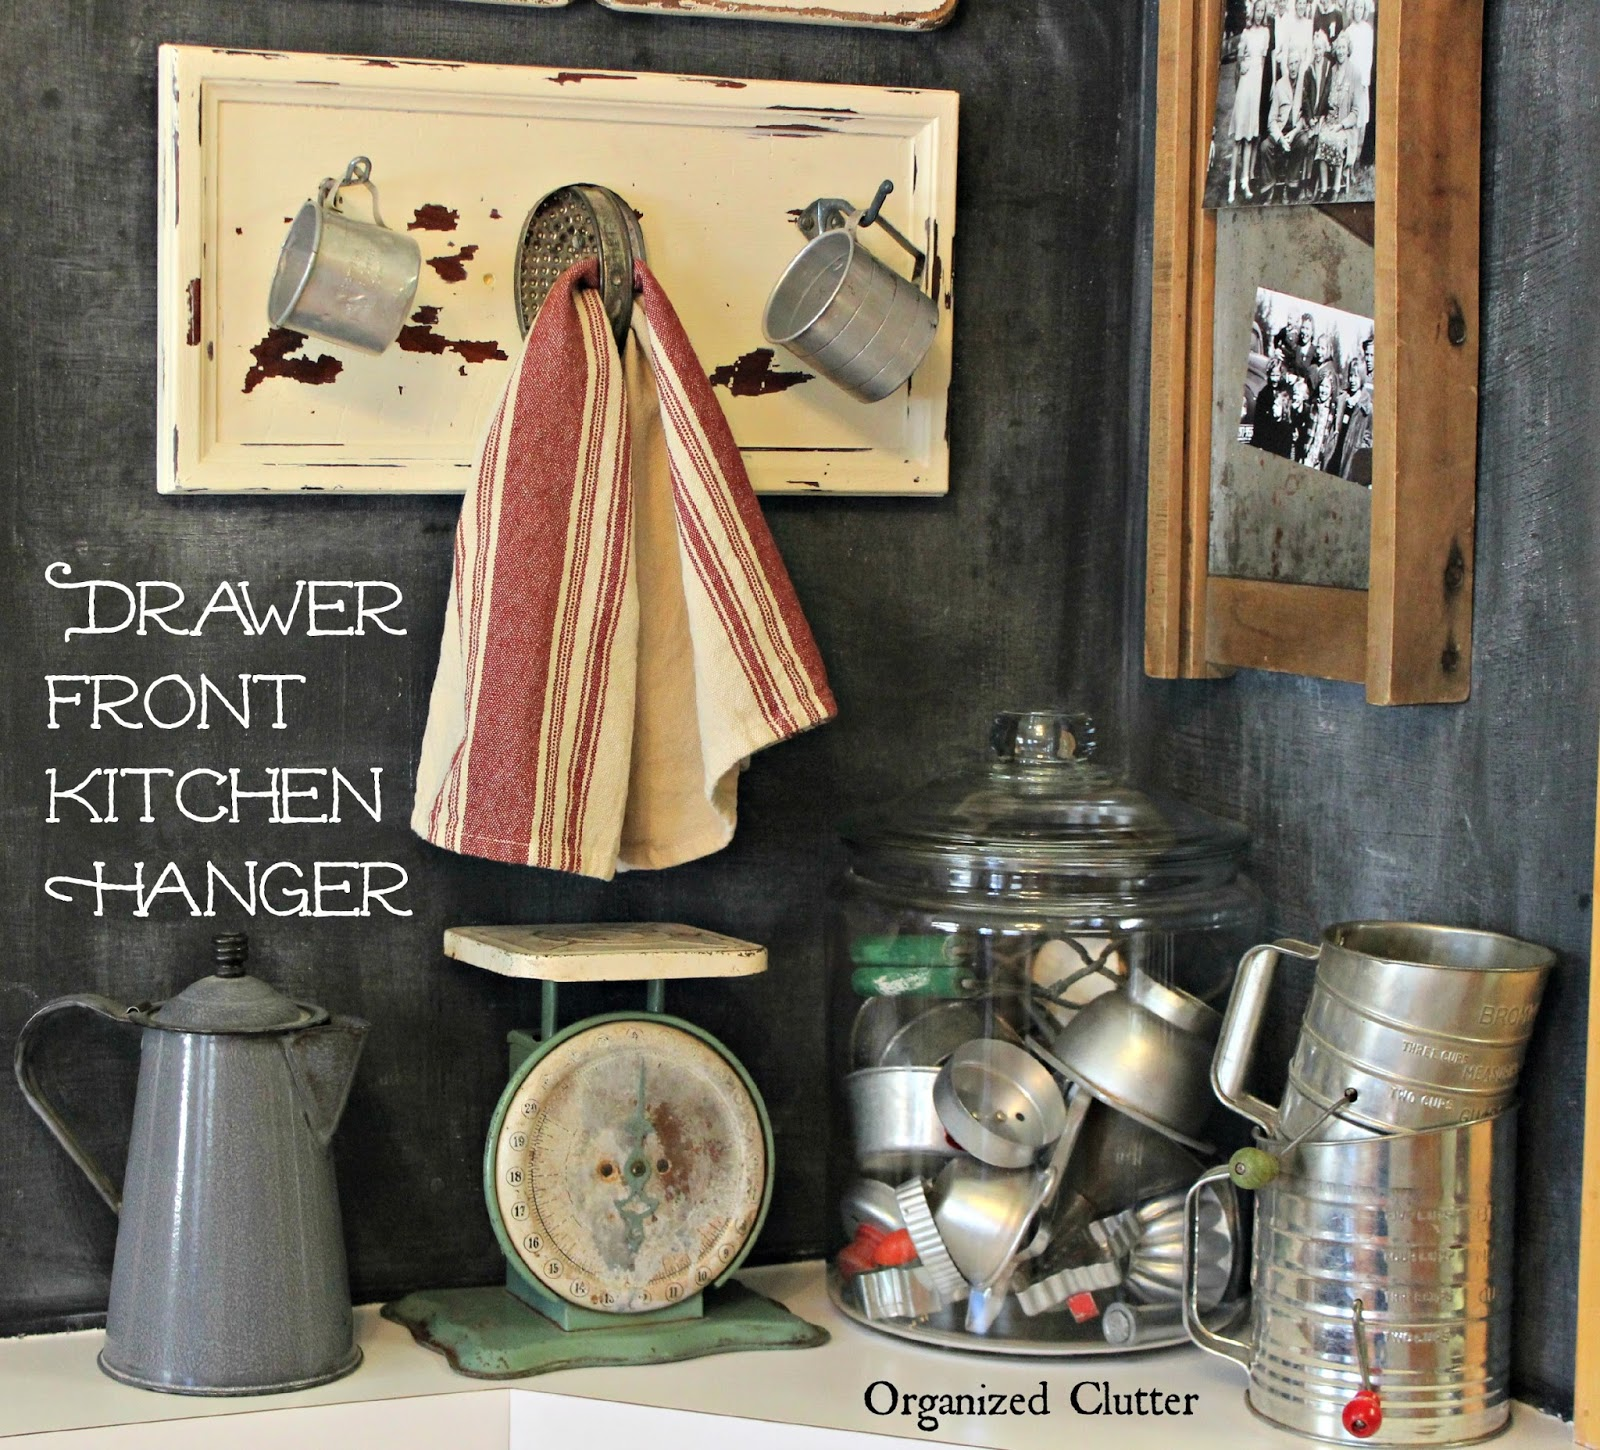 Organized Clutter Free Drawer Front Farmhouse Kitchen Decor